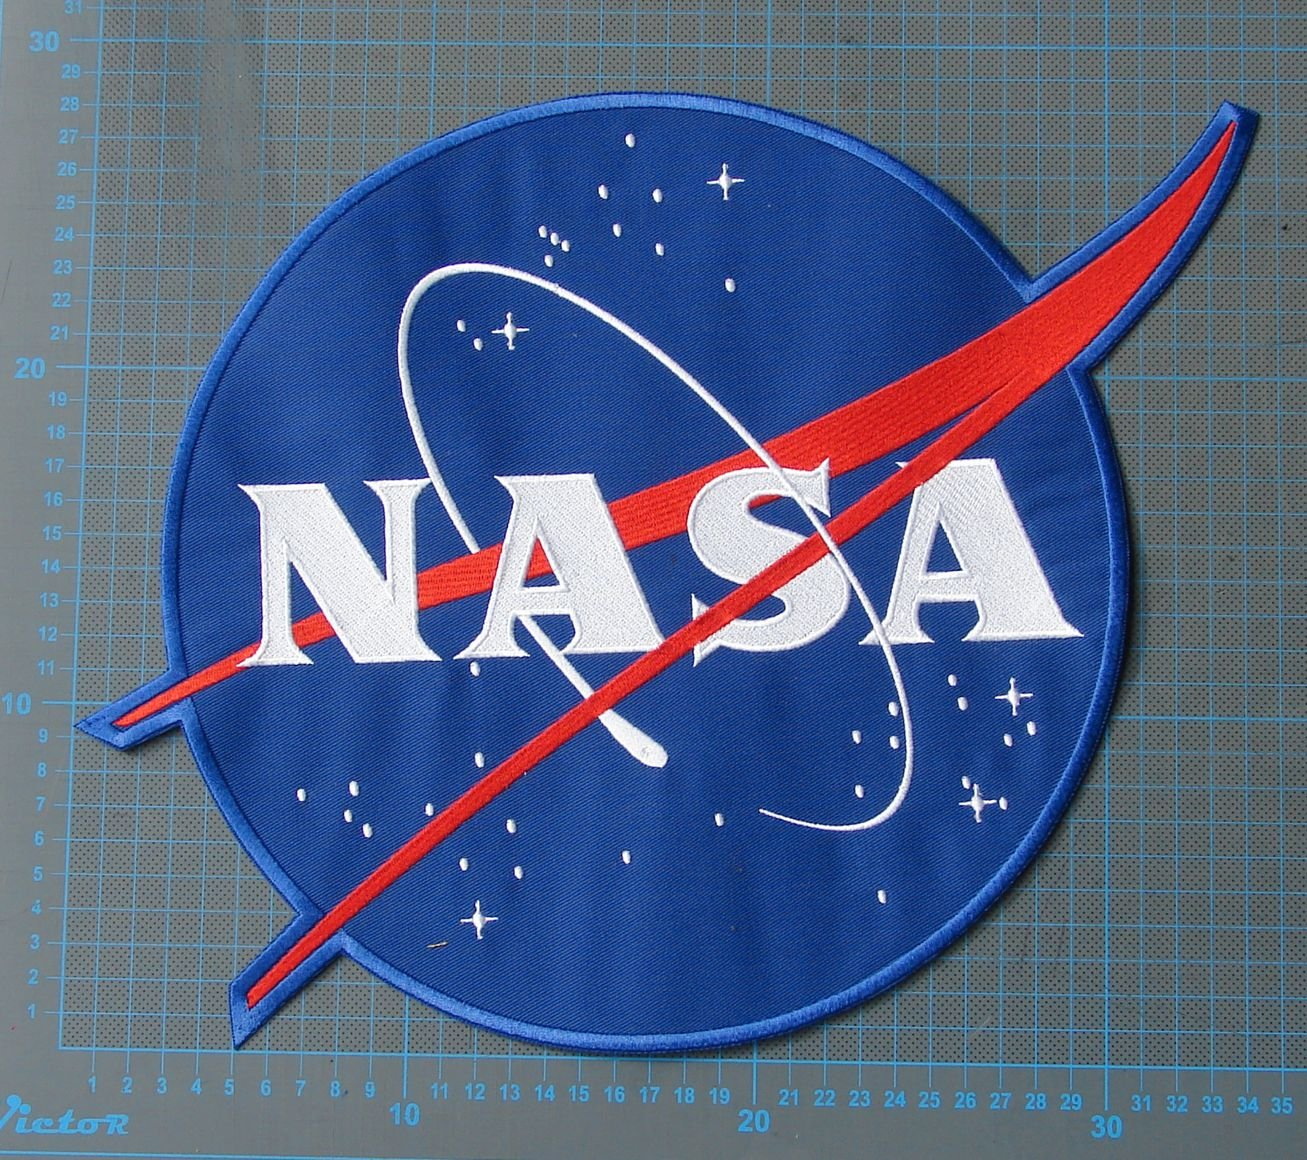 NASA Seal Patch seat cover huge sew on embroidery